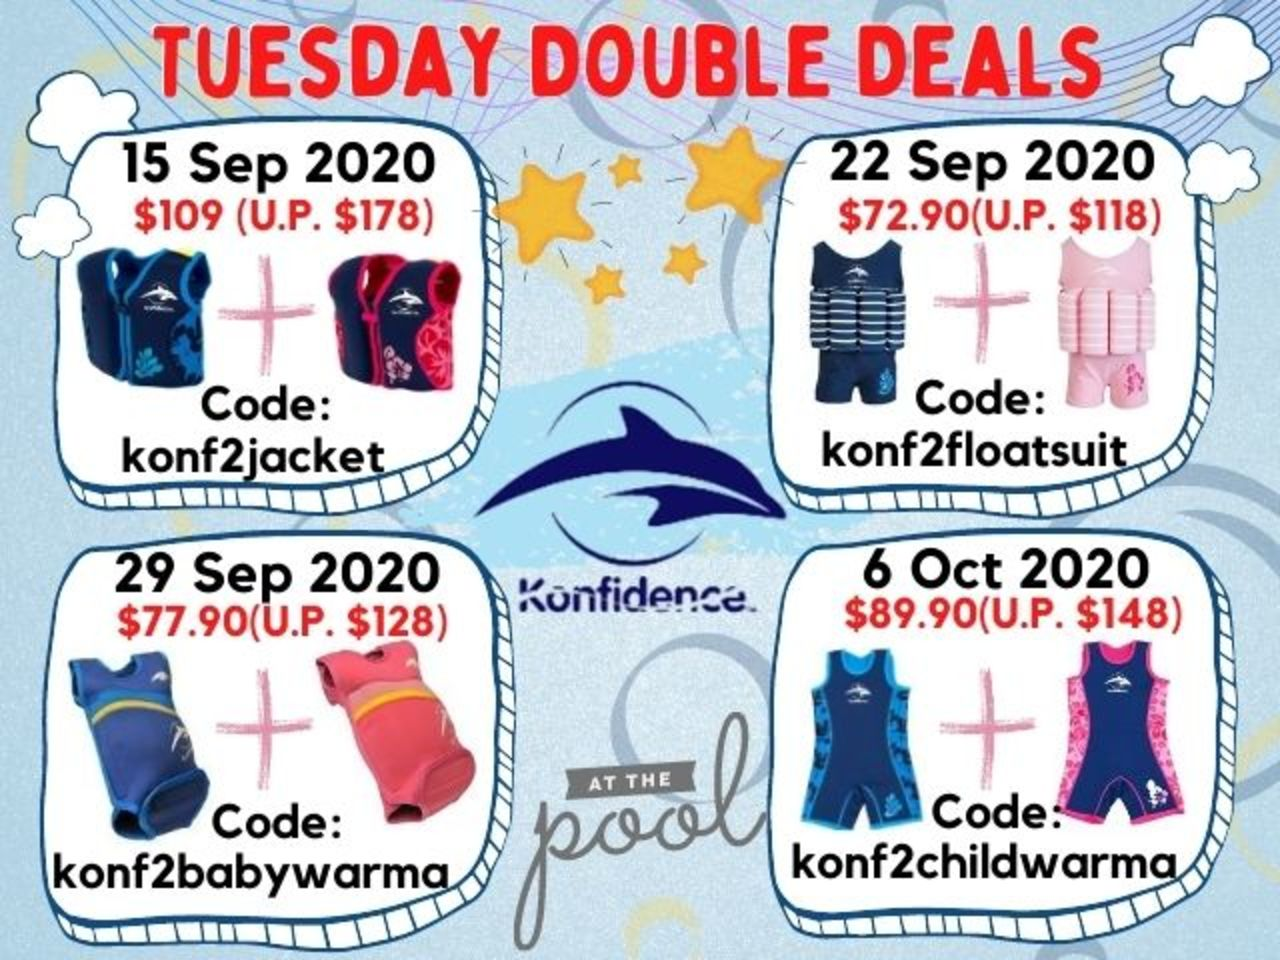 Tue 22 Sept Deal: The Konfidence Floatsuit Buy 2 at Only $72.90 (RRP $118)